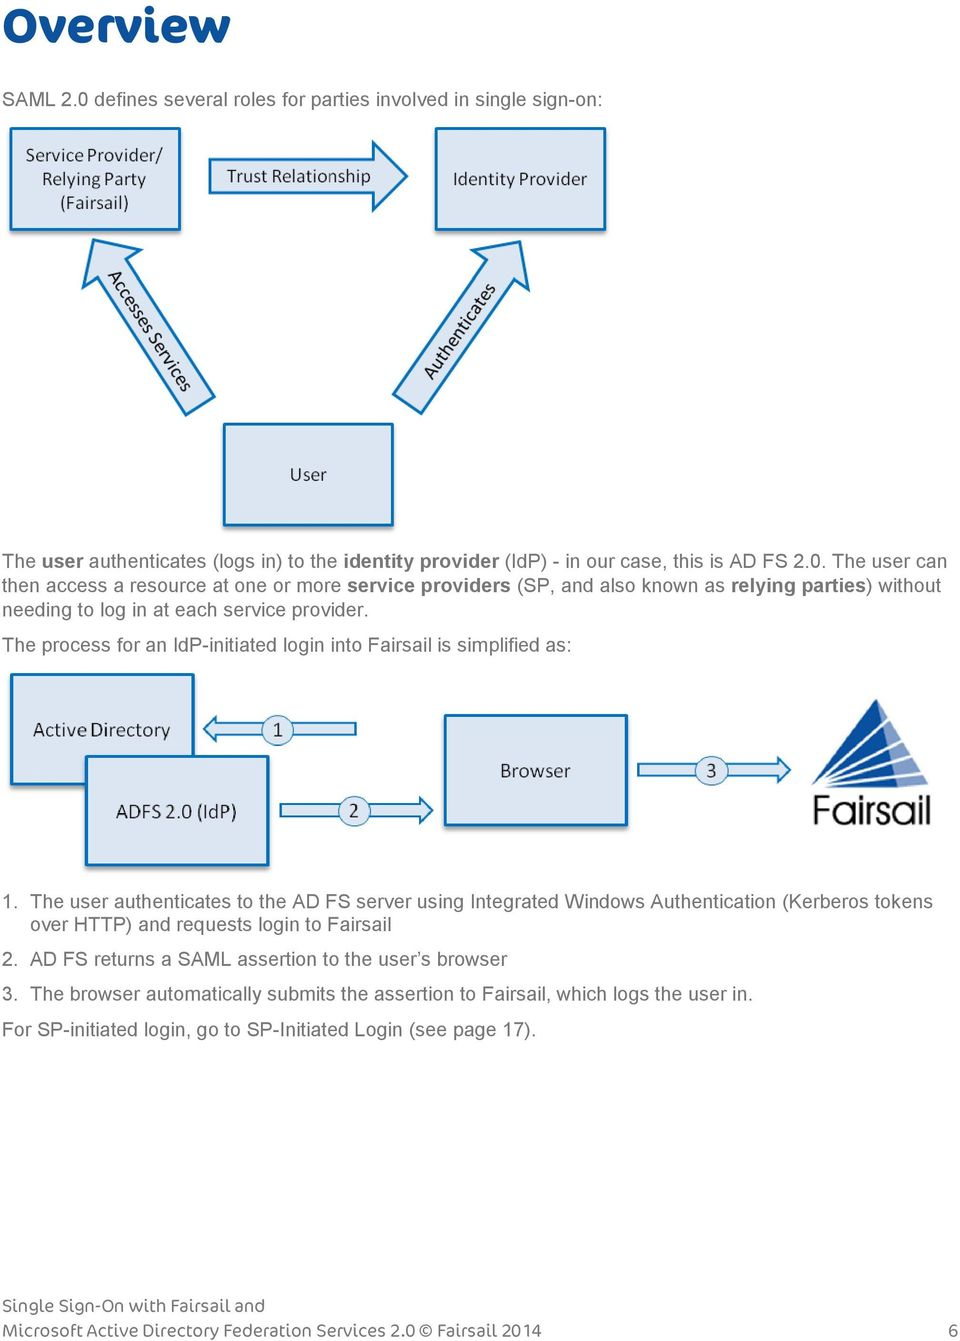 Fairsail  Implementer  Single Sign-On with Fairsail and